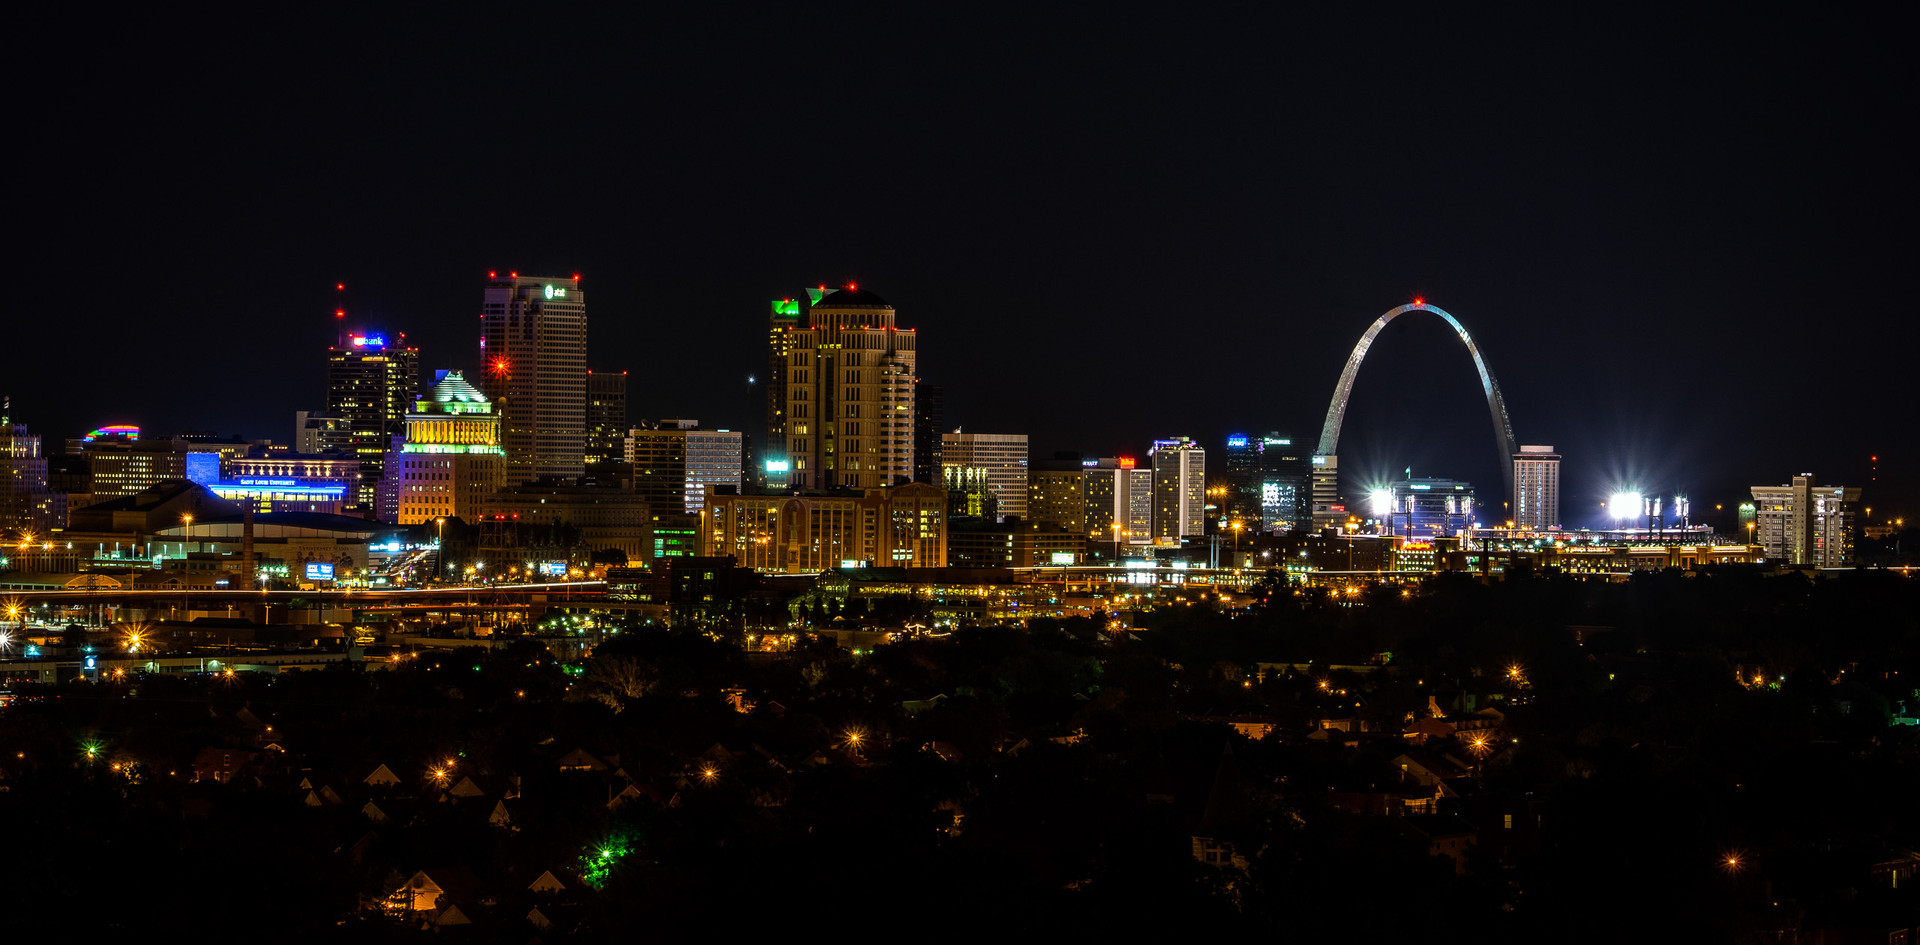 Arch from Compton Water Tower (skyline at night)